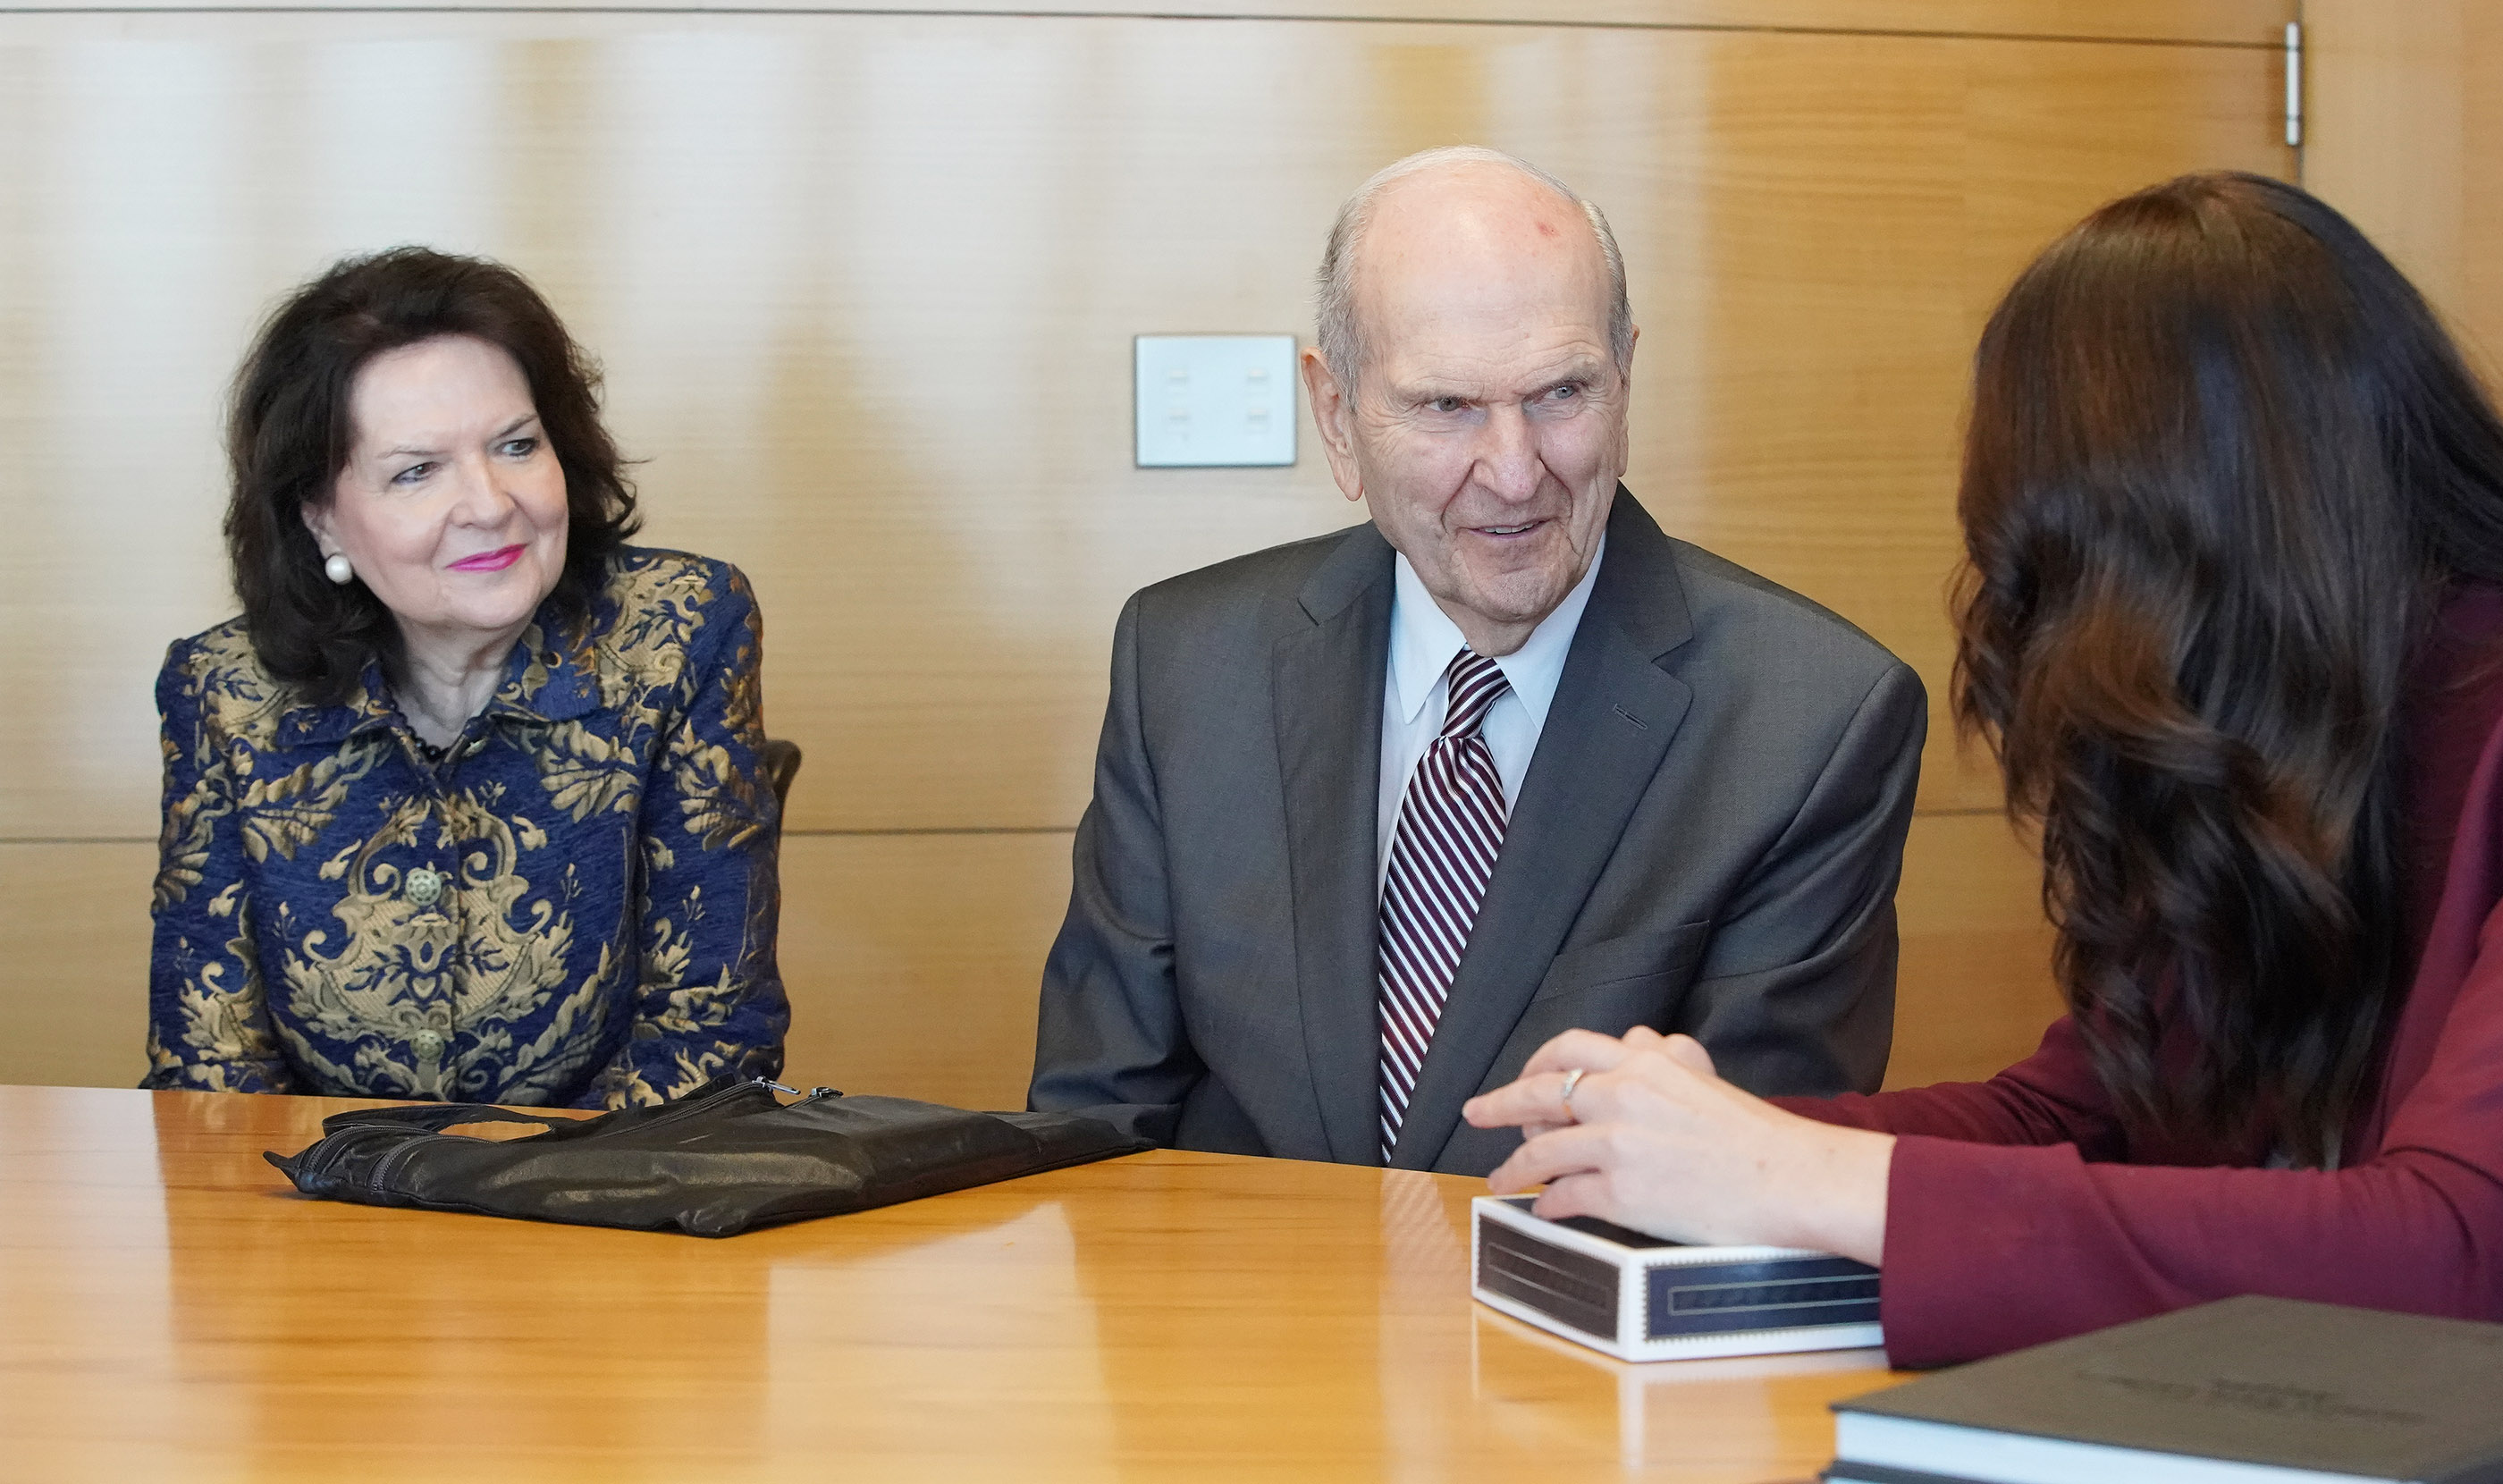 President Russell M. Nelson of The Church of Jesus Christ of Latter-day Saints and his wife, Sister Wendy Nelson, meet with New Zealand Prime Minister Jacinda Ardern in Wellington, New Zealand, on Monday, May 20, 2019.